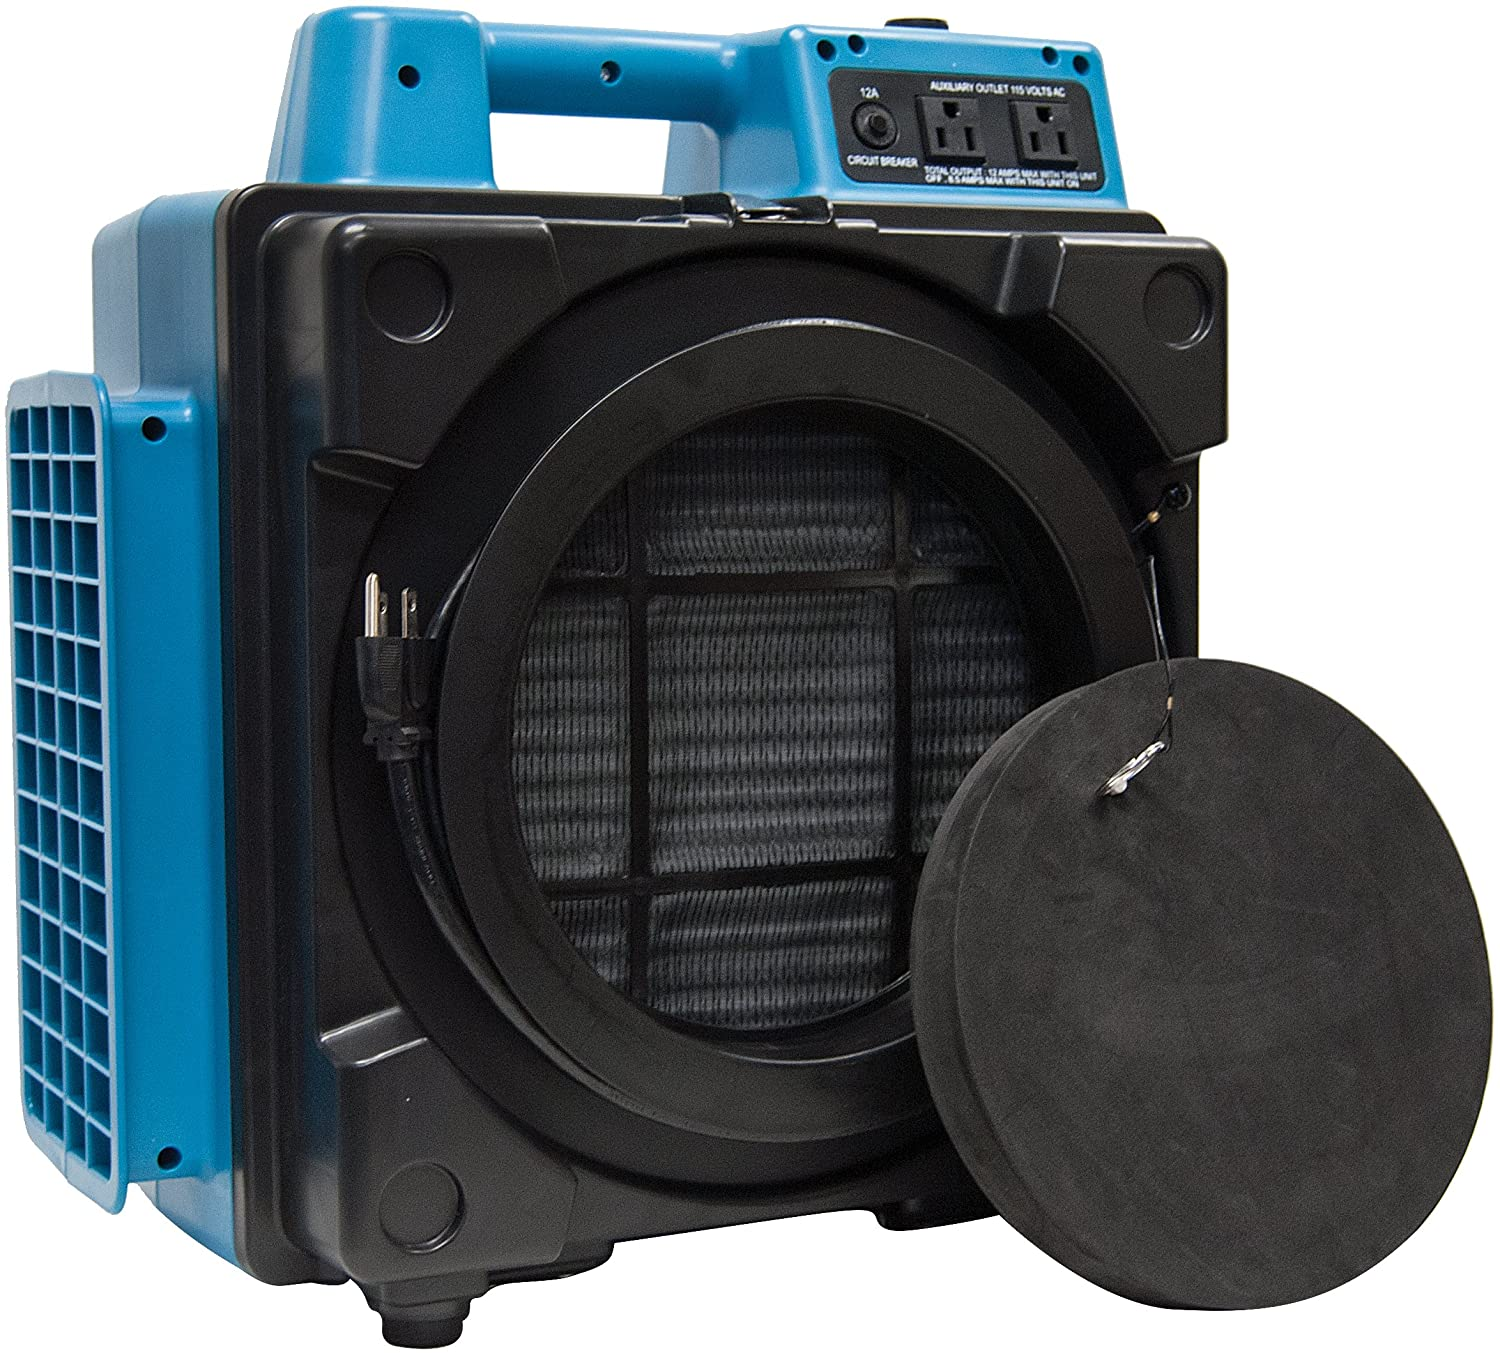 XPOWER X-2480A Professional 3 Stage Filtration System